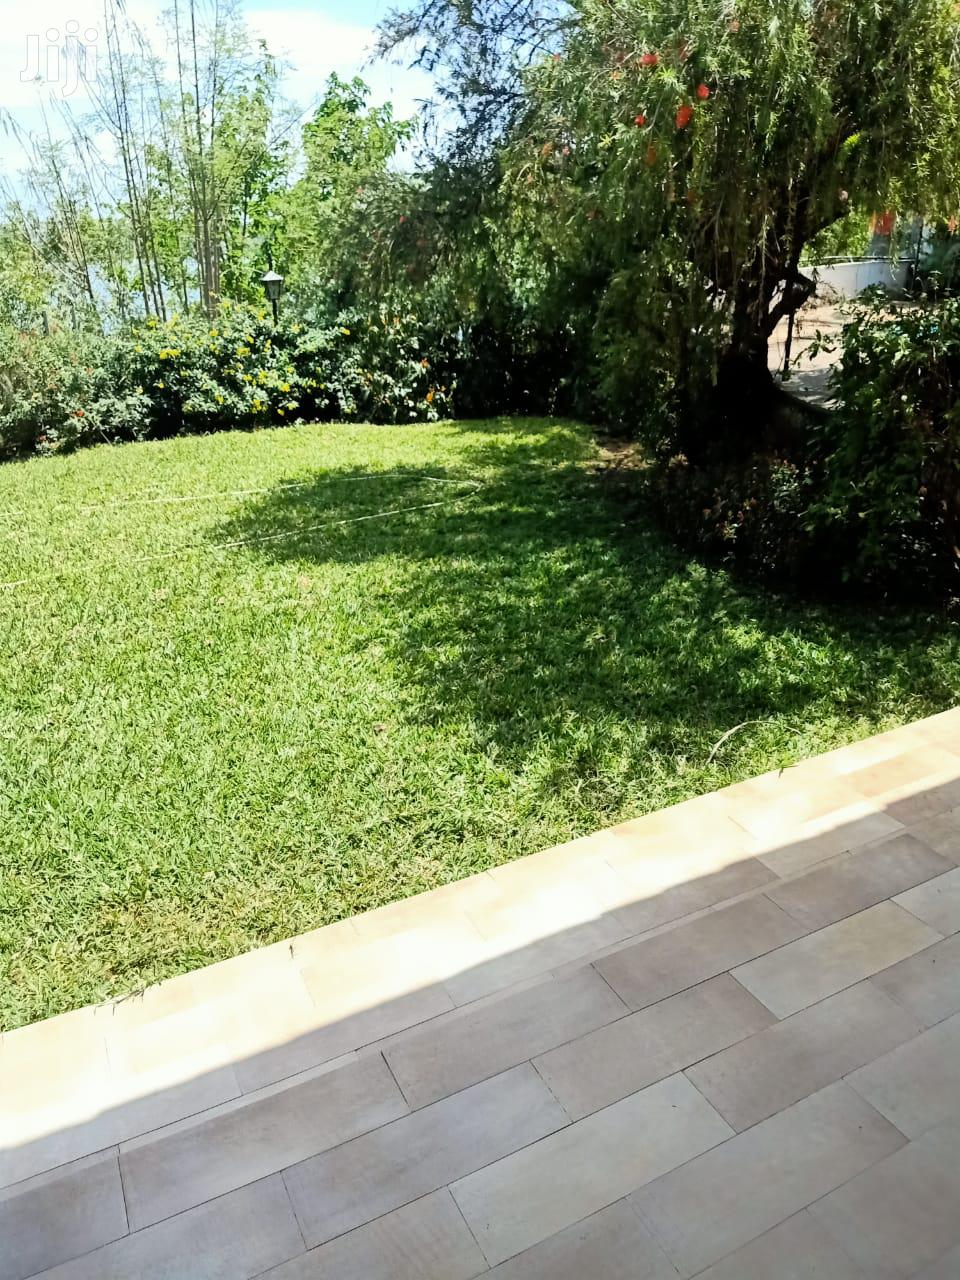 Nyali for Sale 5br Beachfront Standalone House